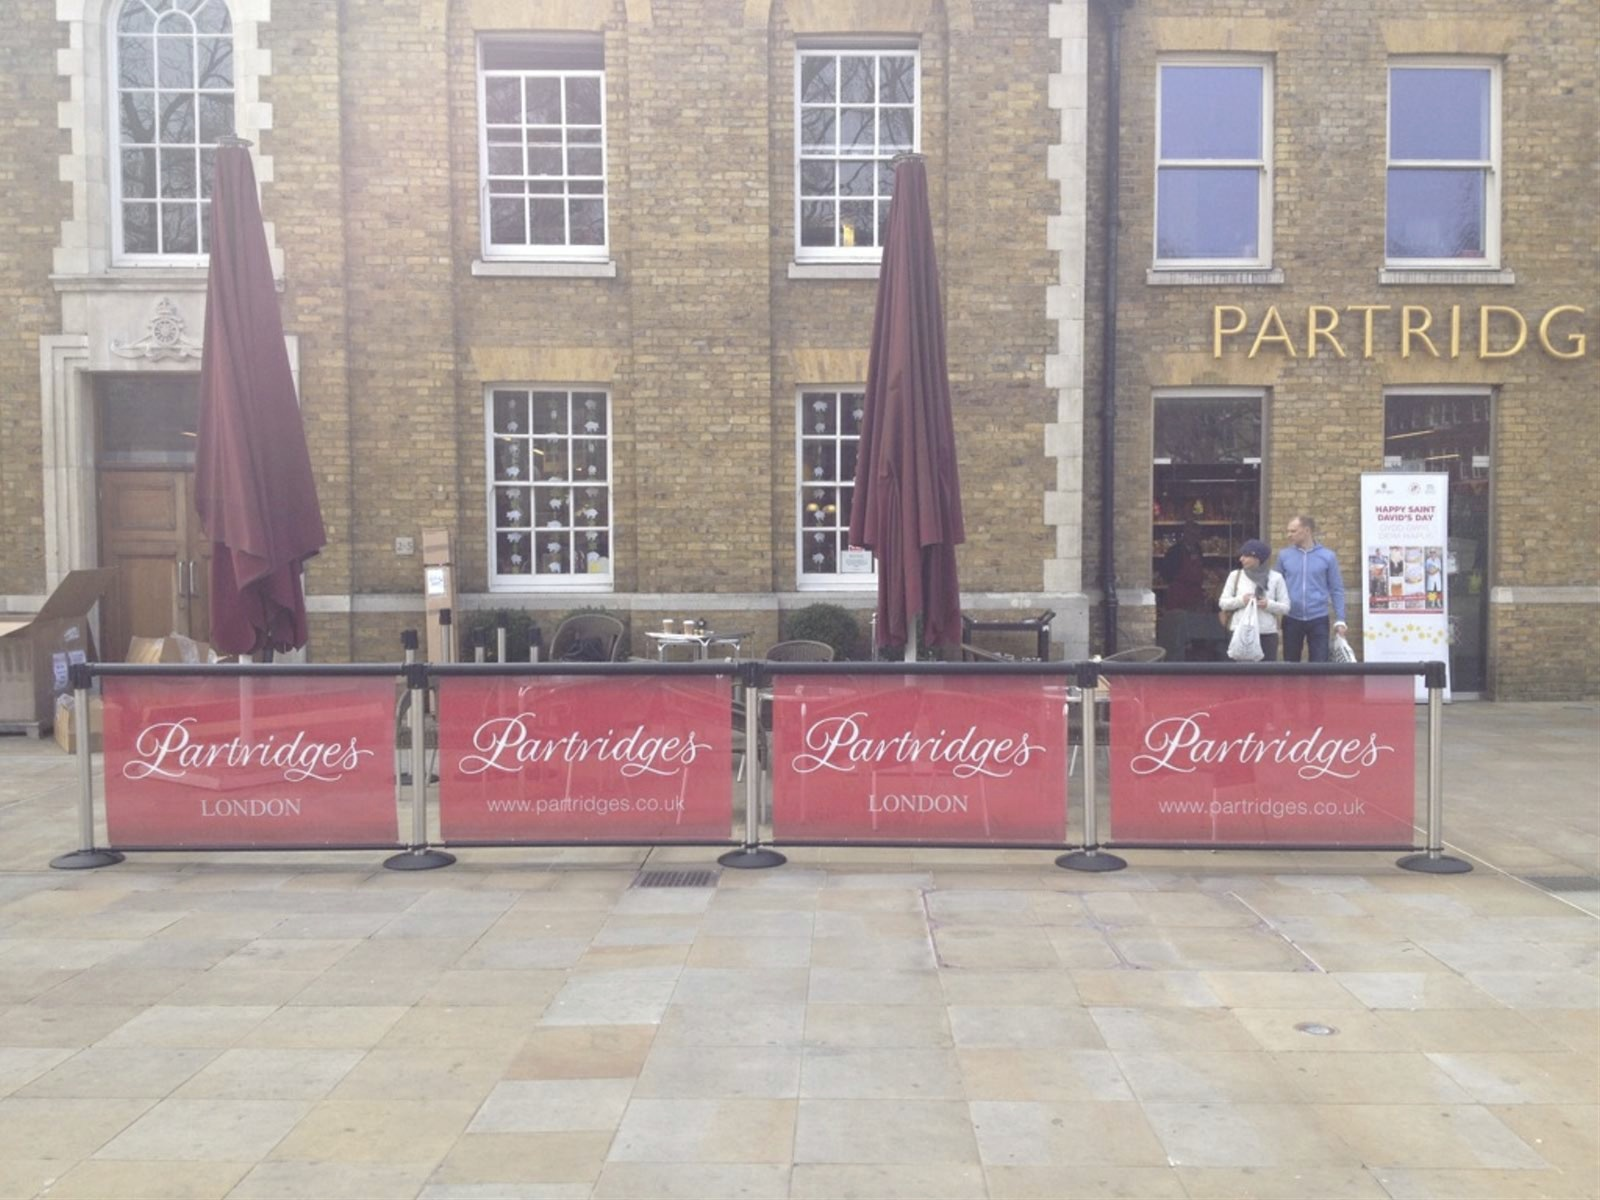 Partridges London